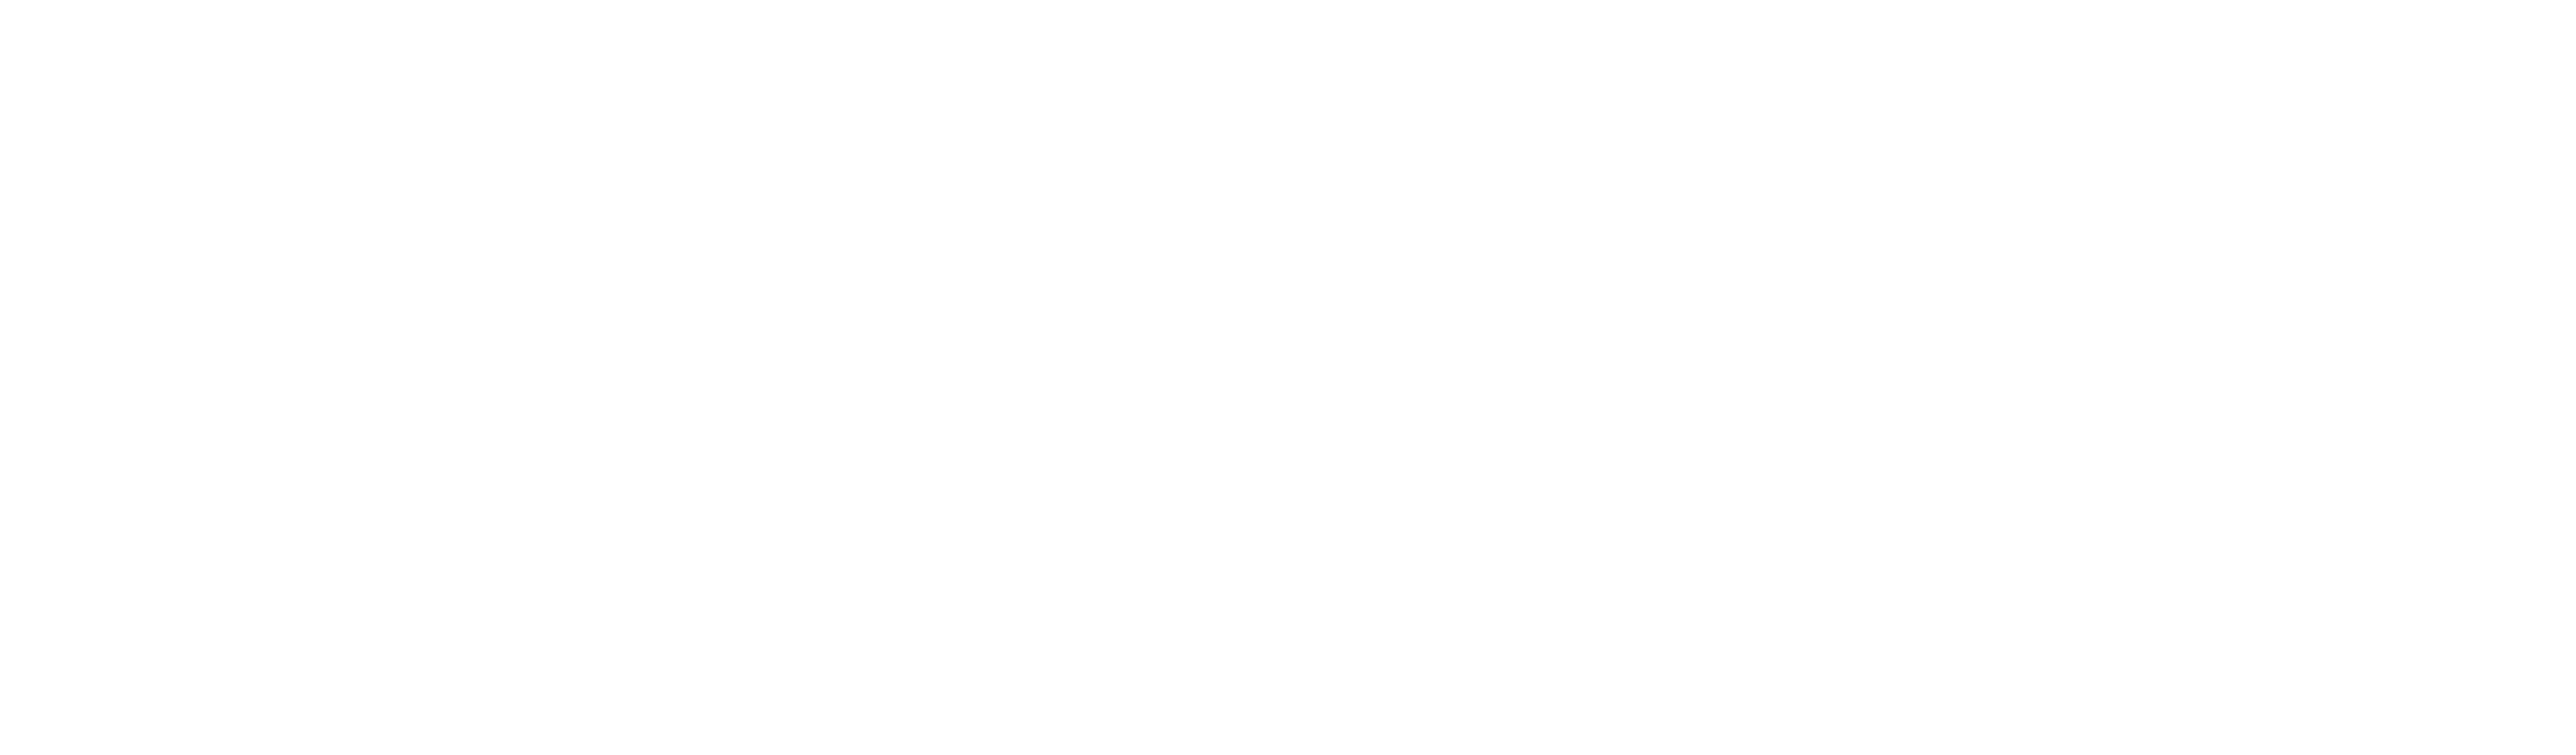 renault tribal